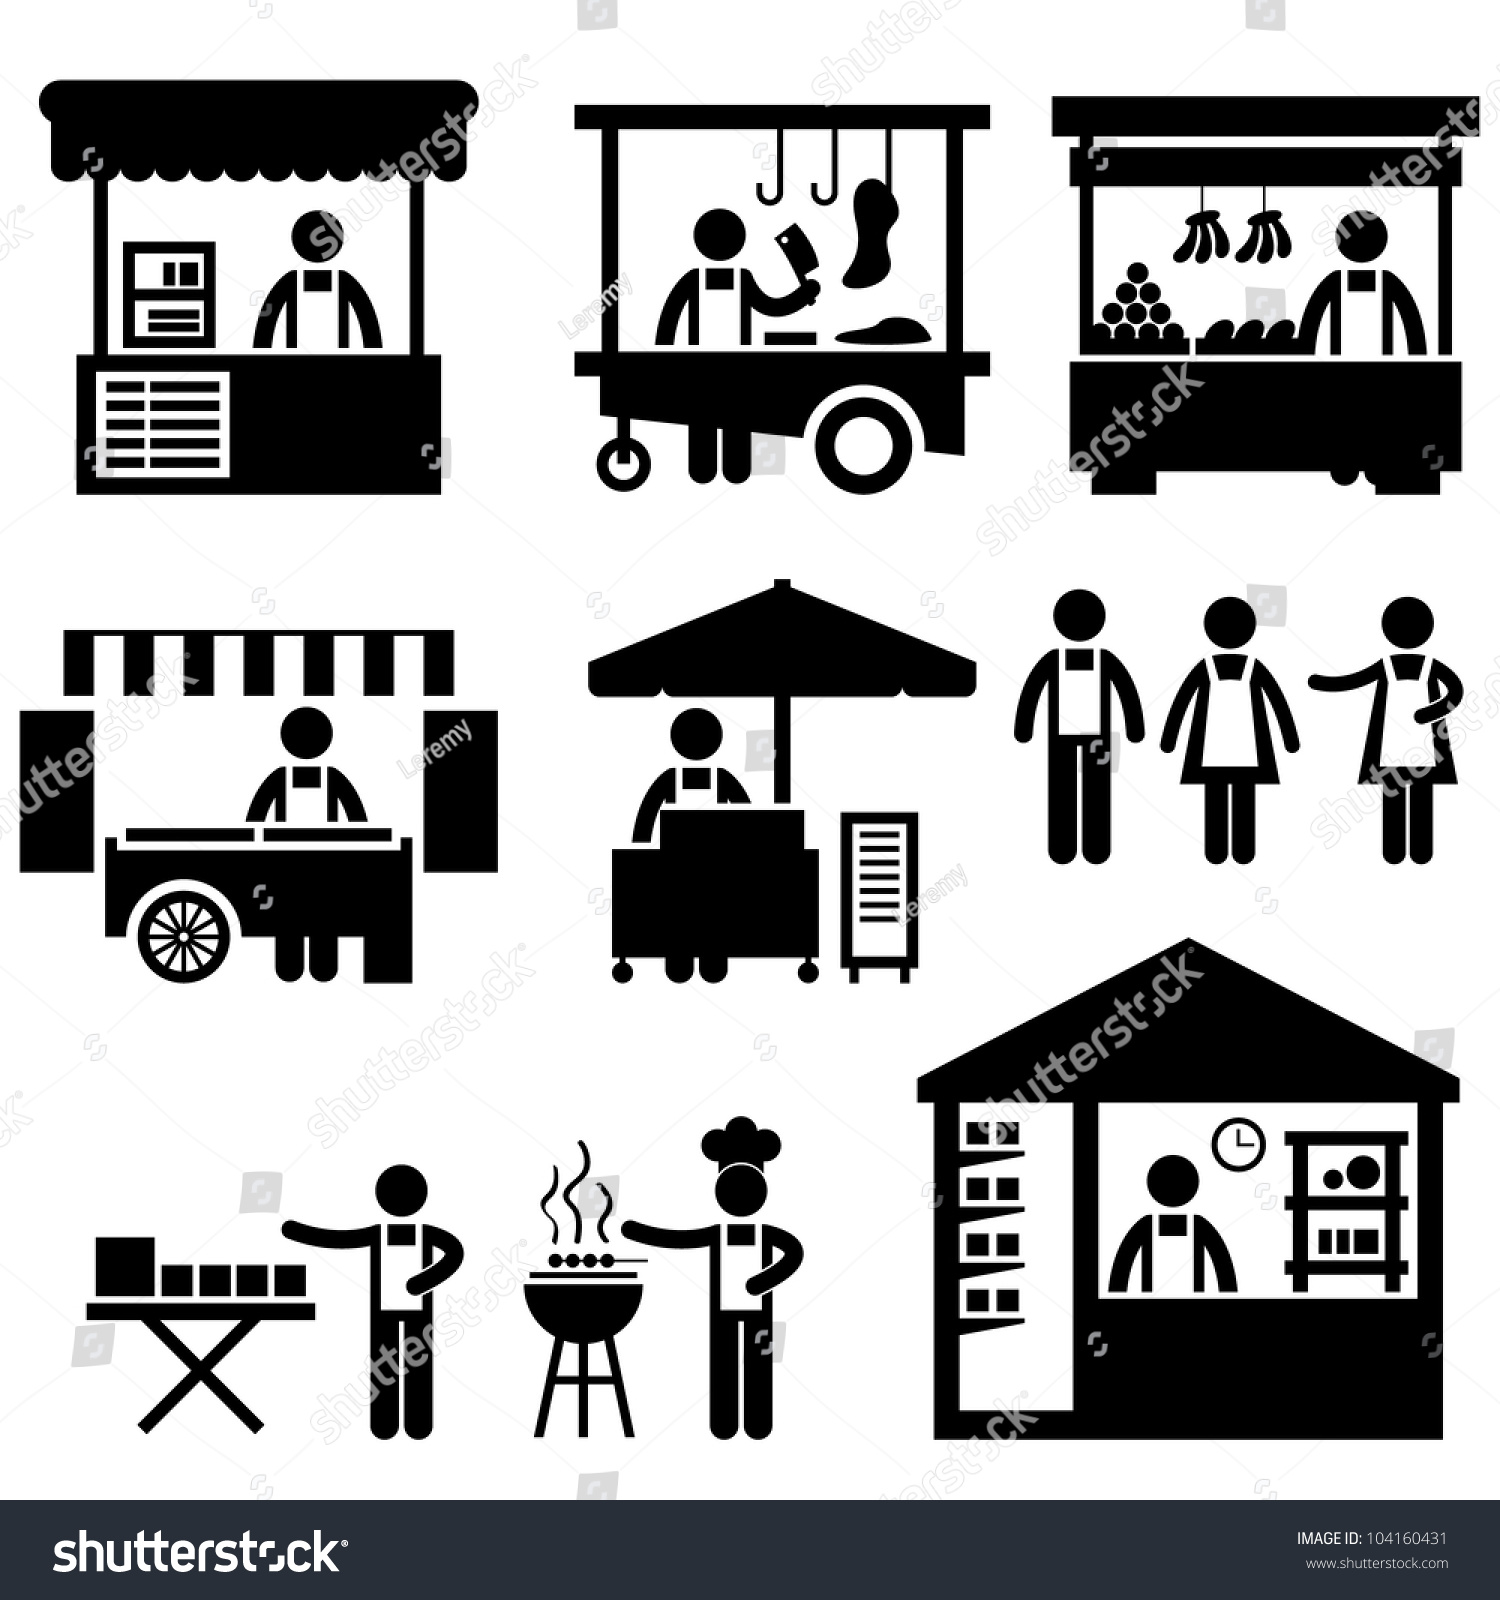 Exhibition Stall Icon : Business stall store booth market marketplace stock vector